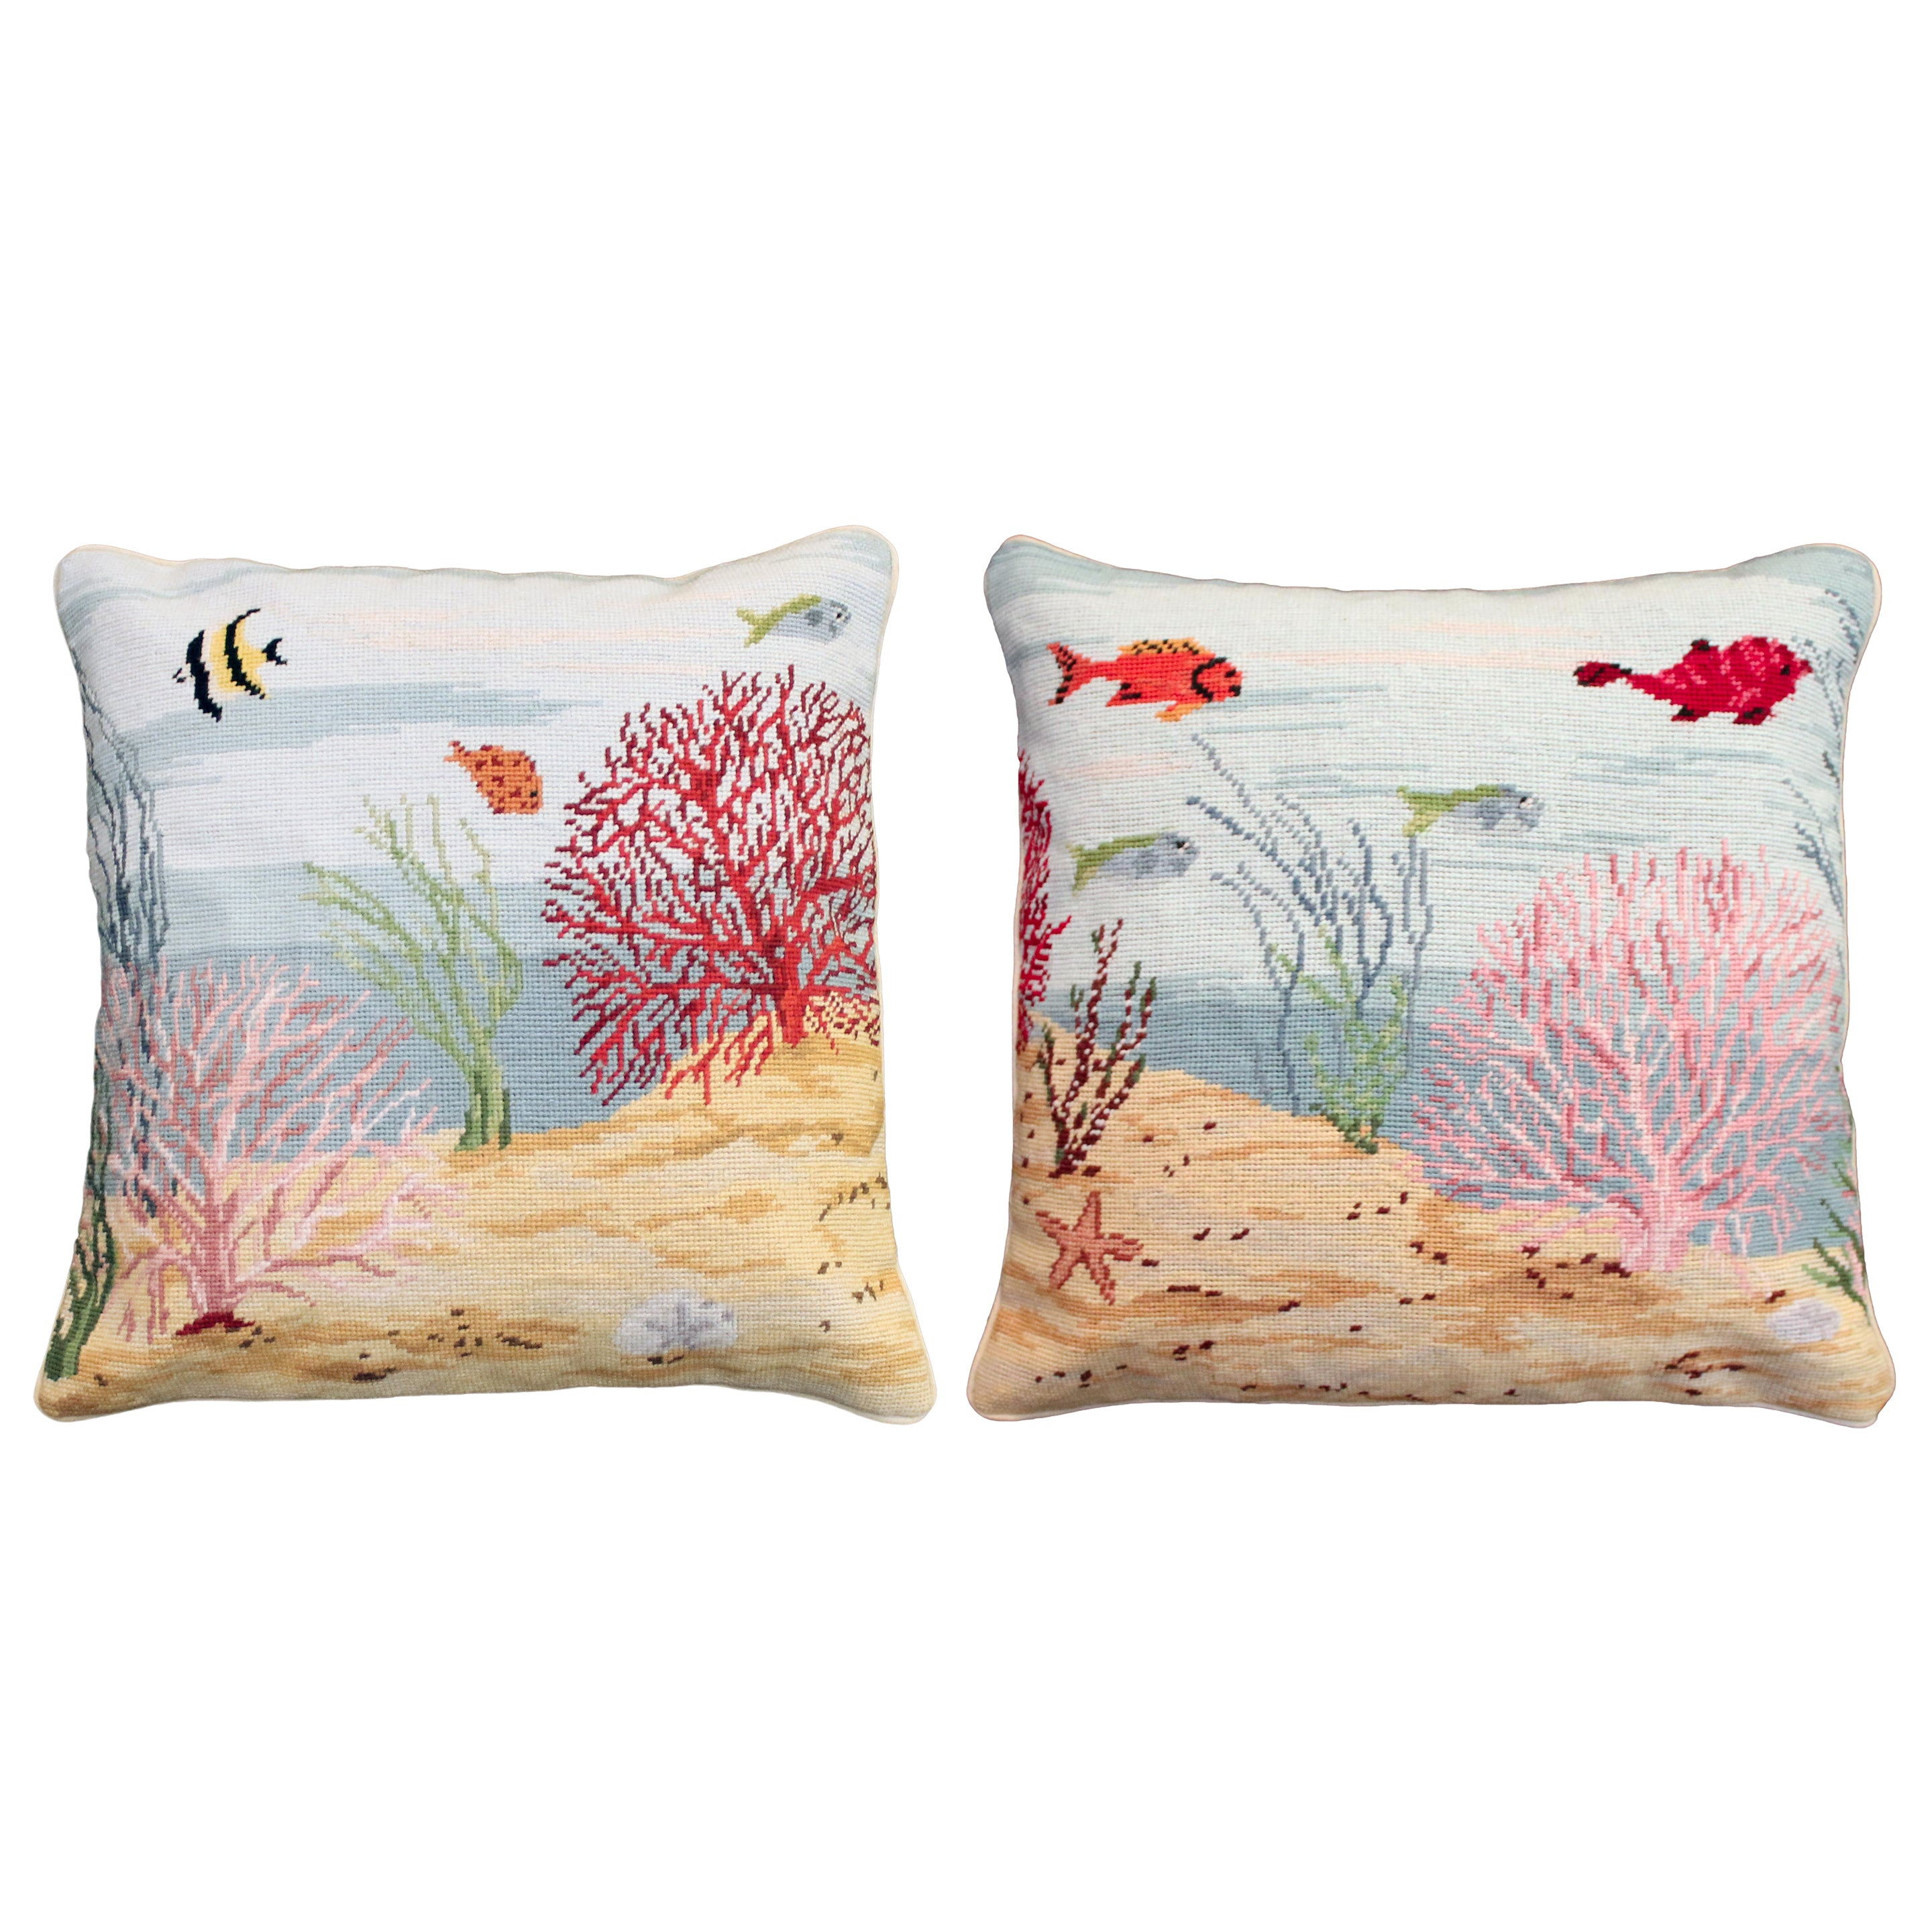 Coral Needlepoint Pillow, Left Side